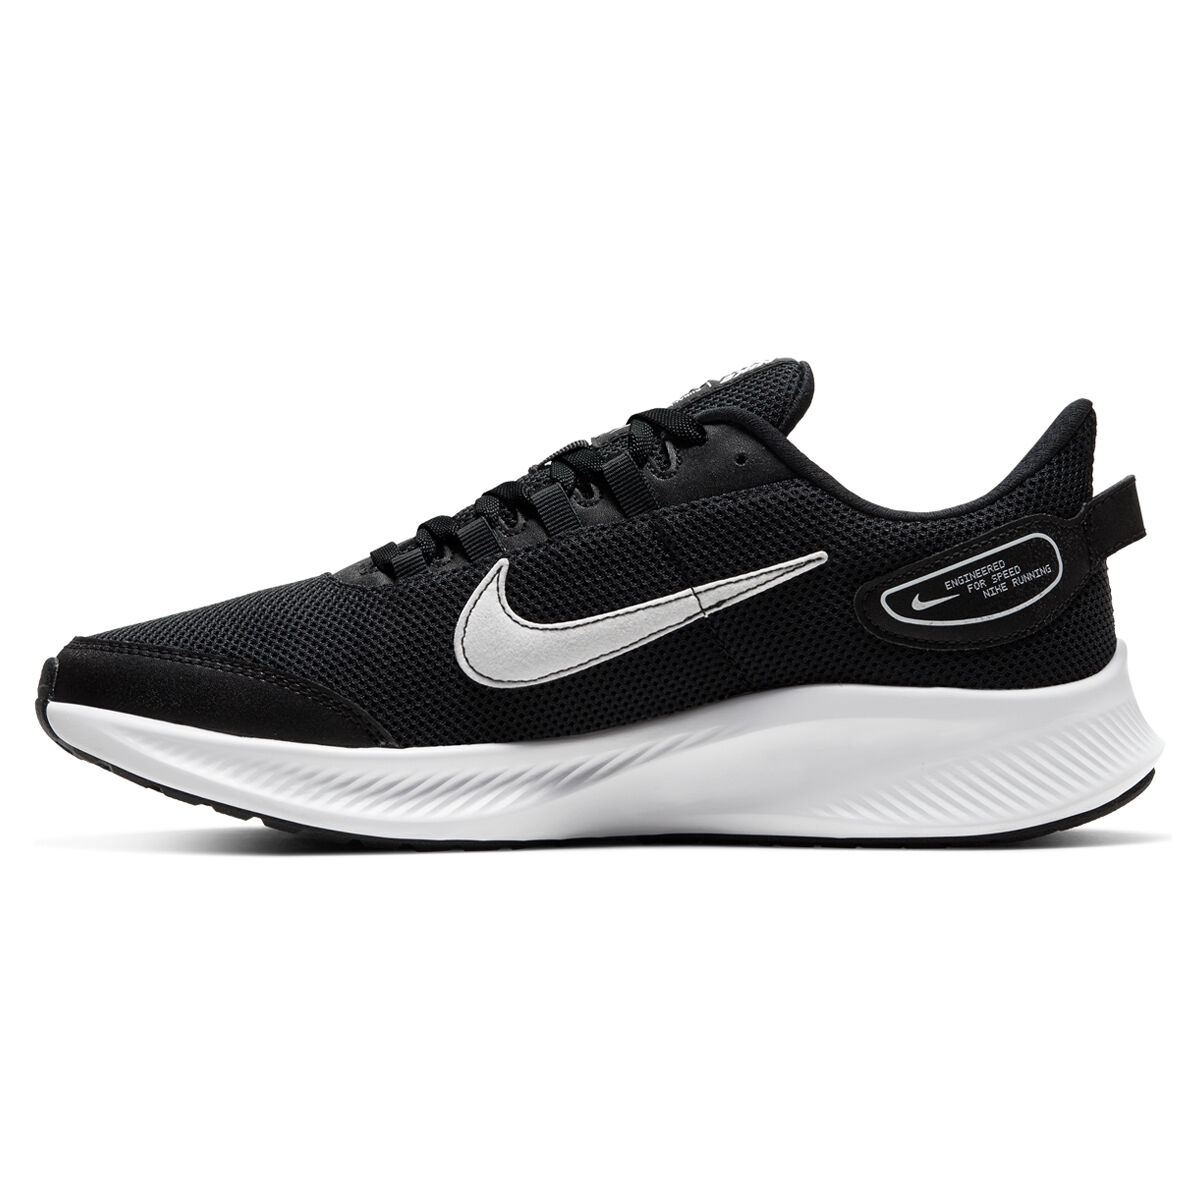 Nike Run All Day 2 Womens Running Shoes | Rebel Sport